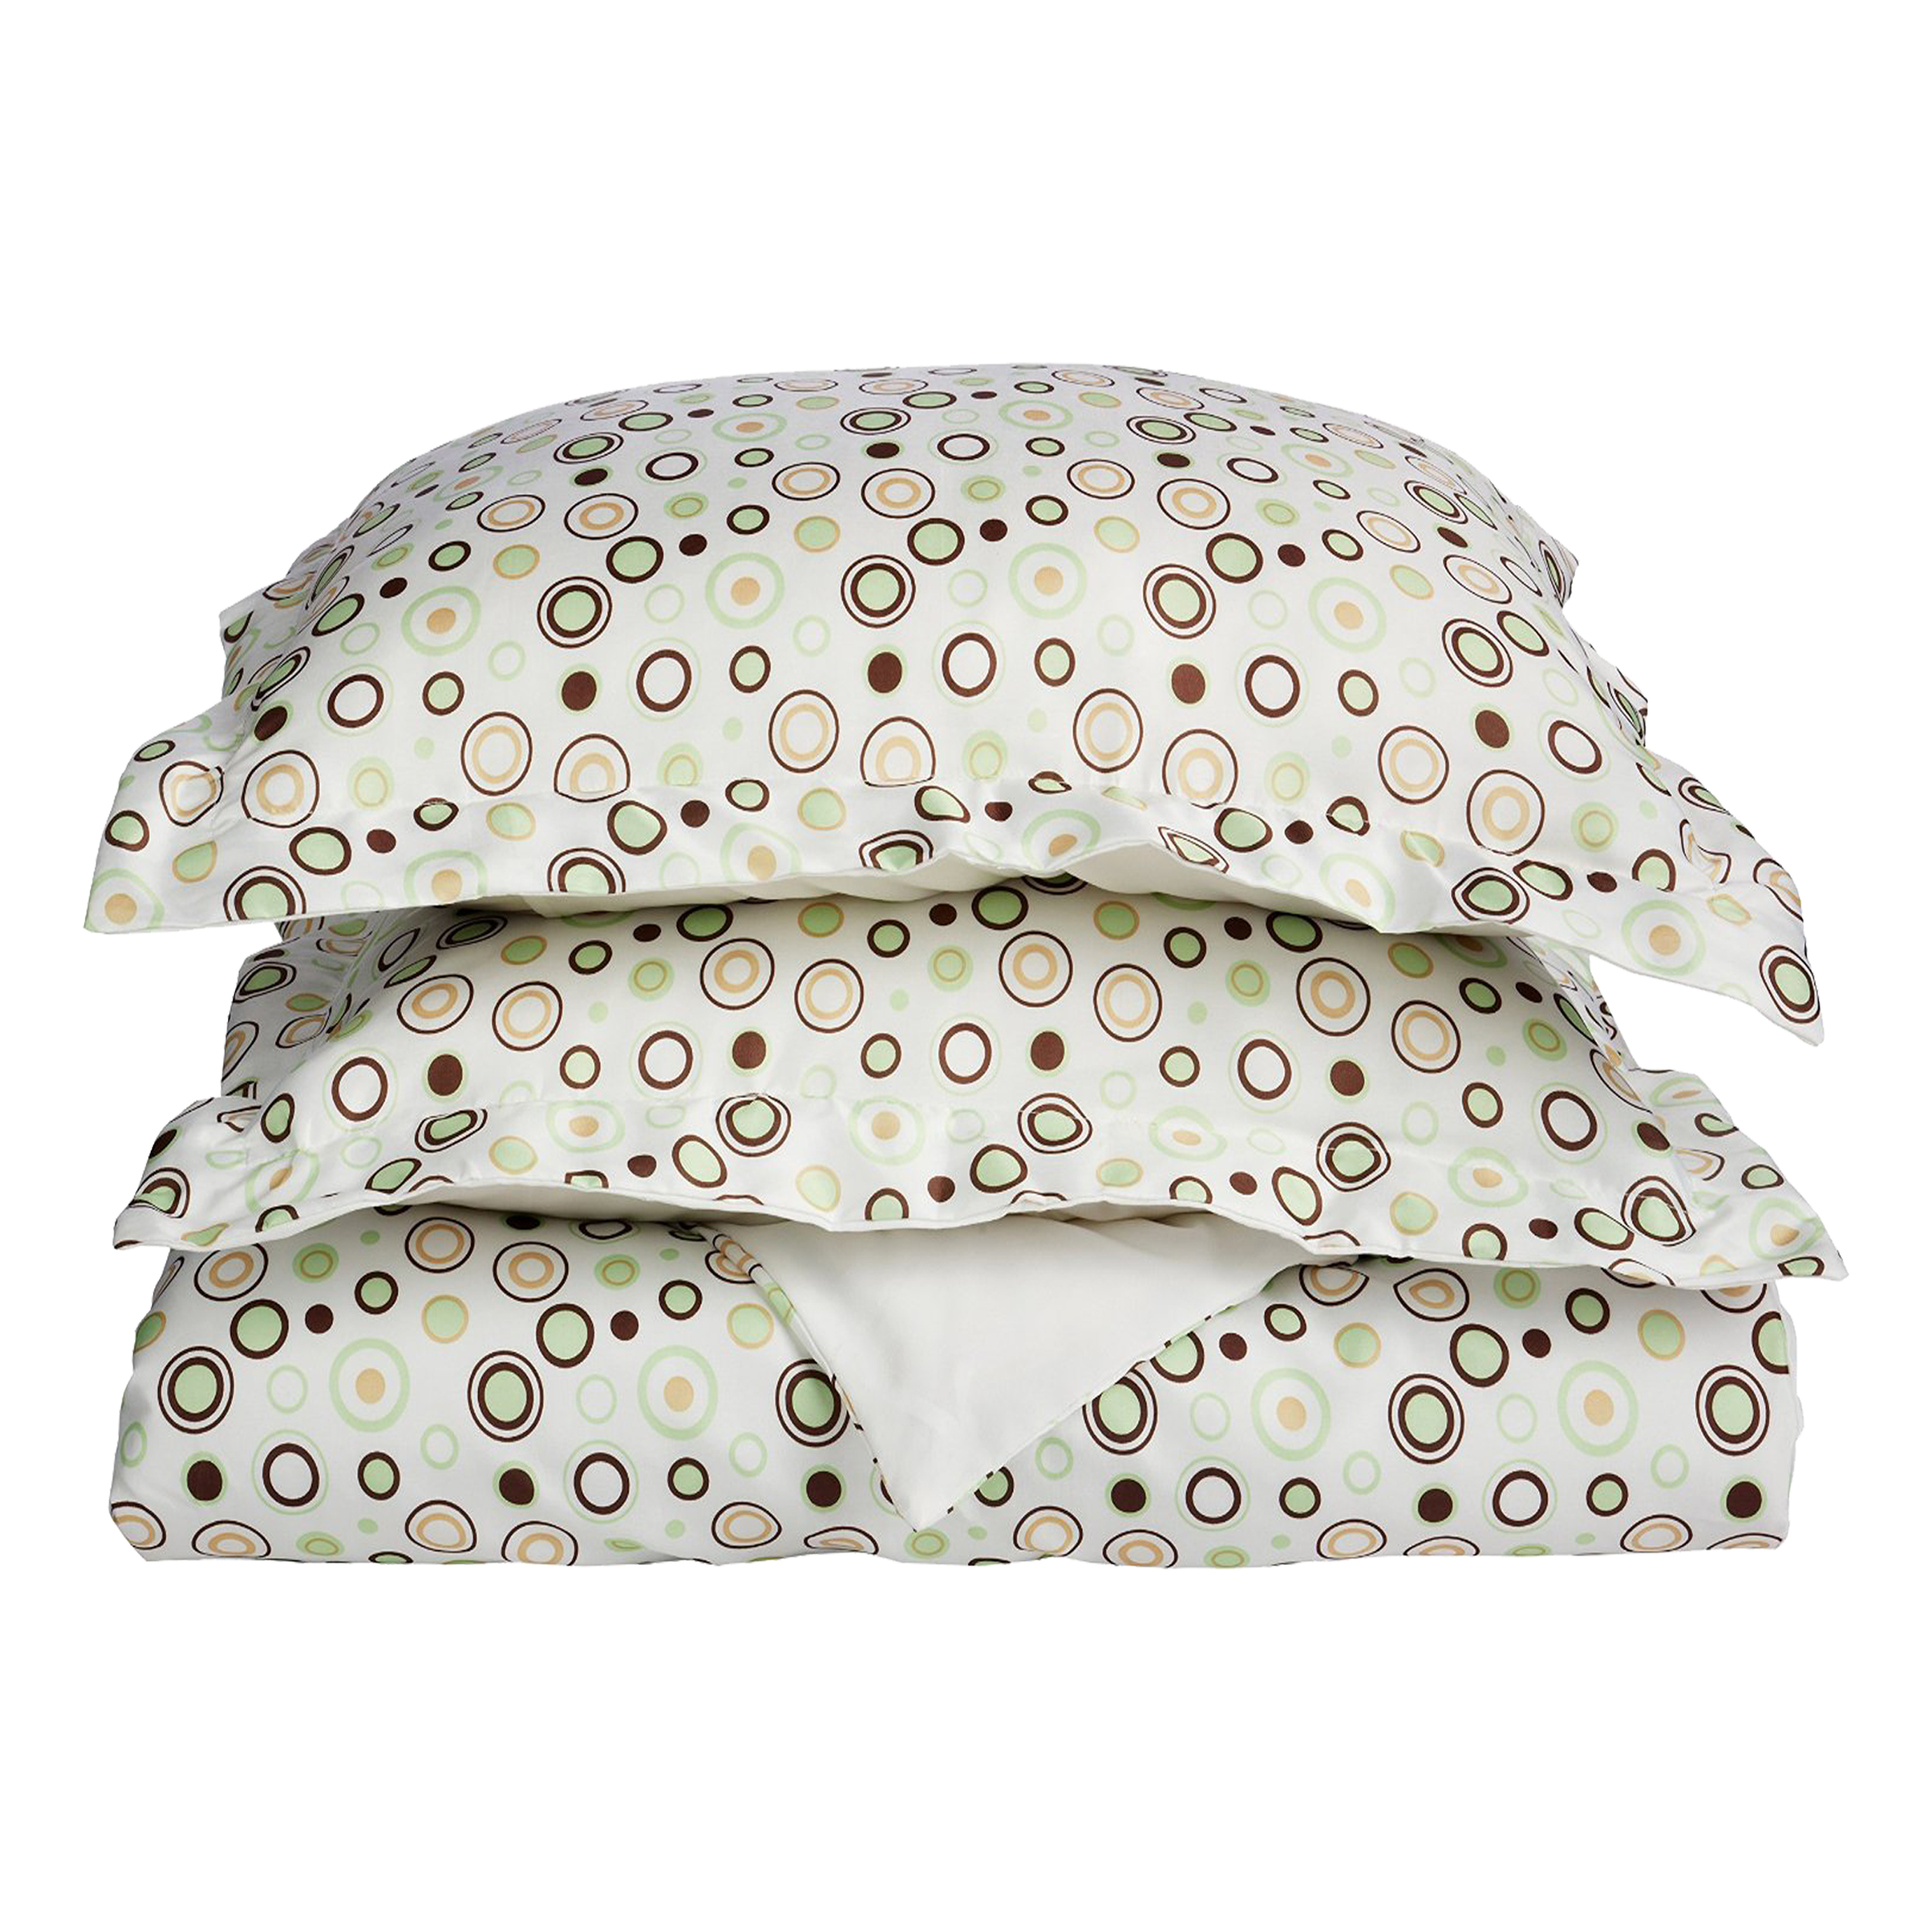 Superior Light Weight and Super Soft Brushed Microfiber, Wrinkle Resistant Printed Duvet Cover Set with Circles